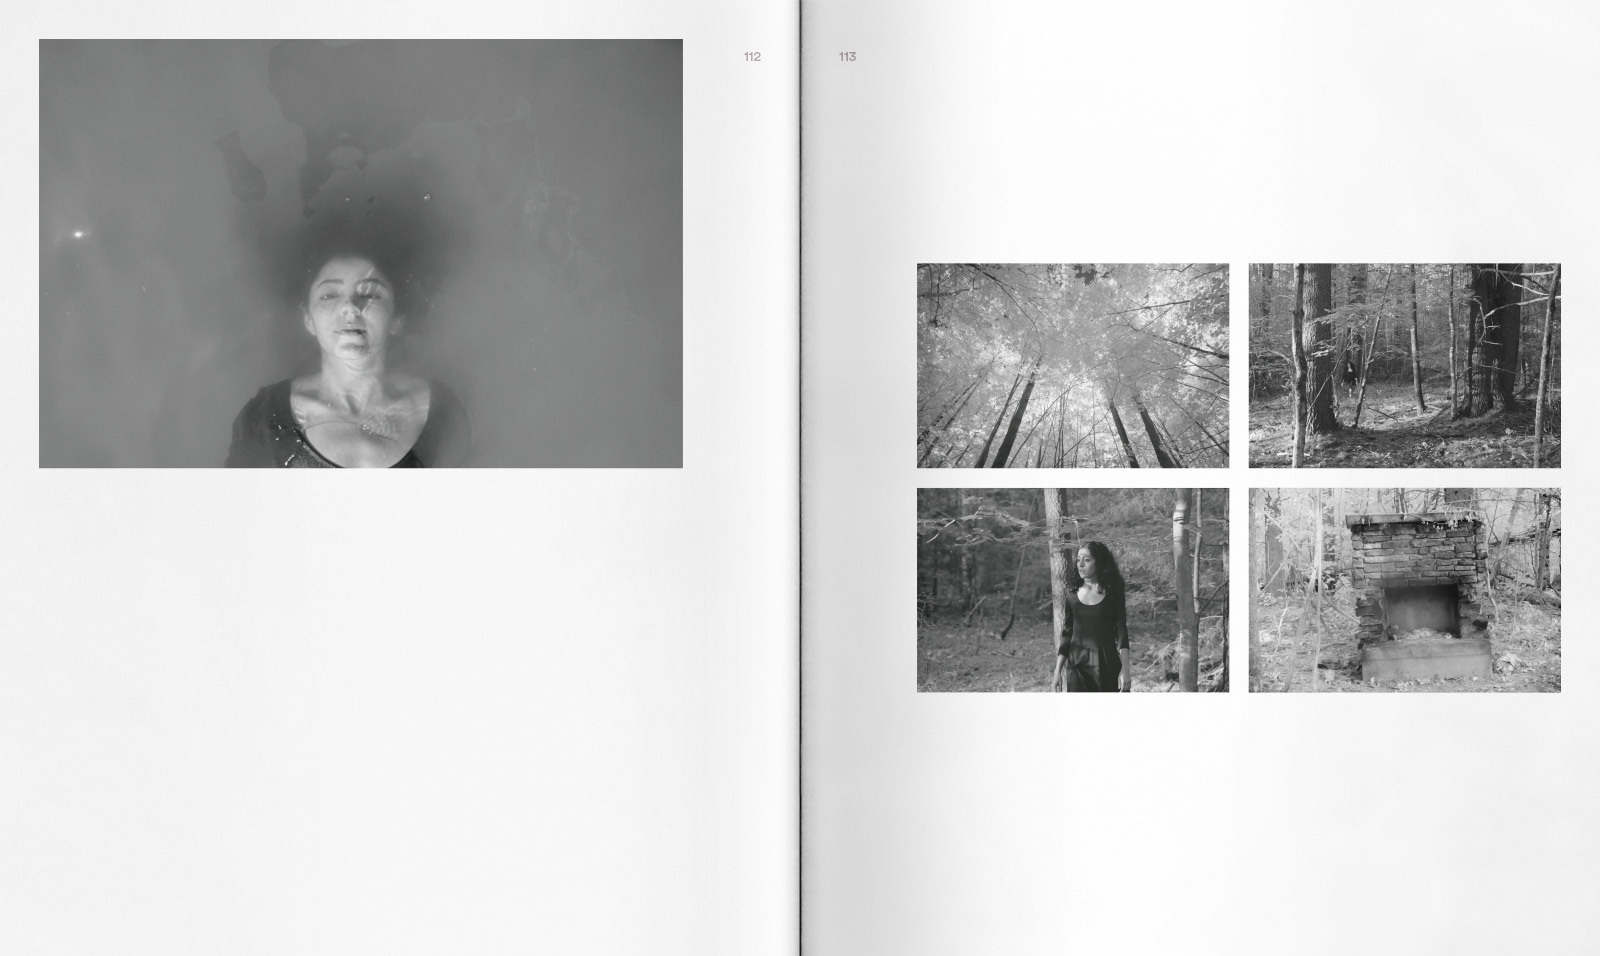 Nesthat spread09